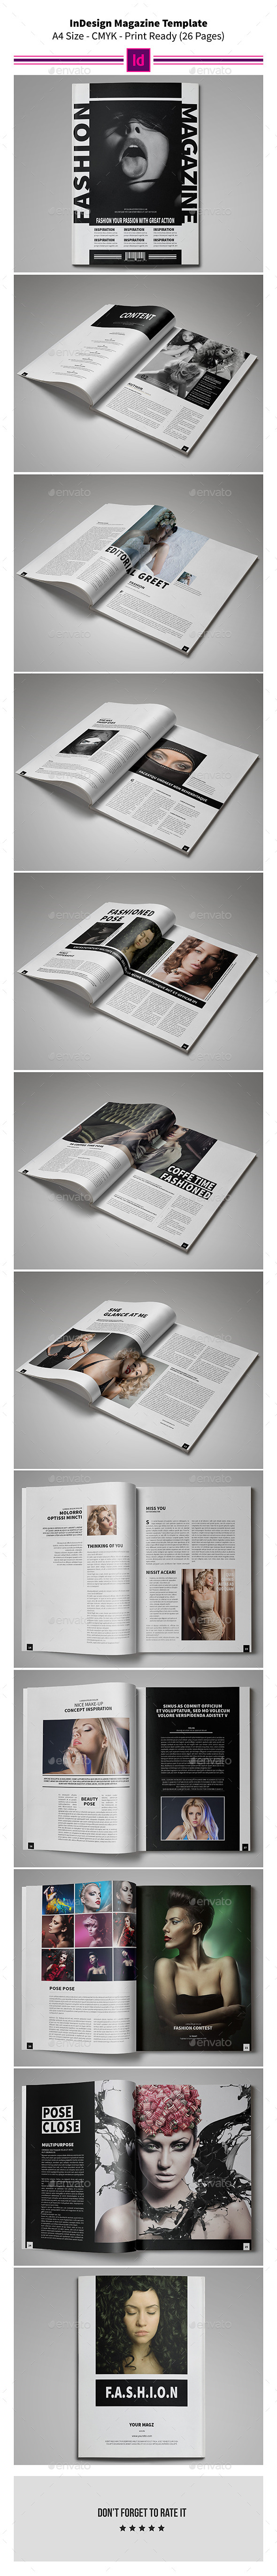 Fashion InDesign Magazine Template 26 Pages - Magazines Print Templates